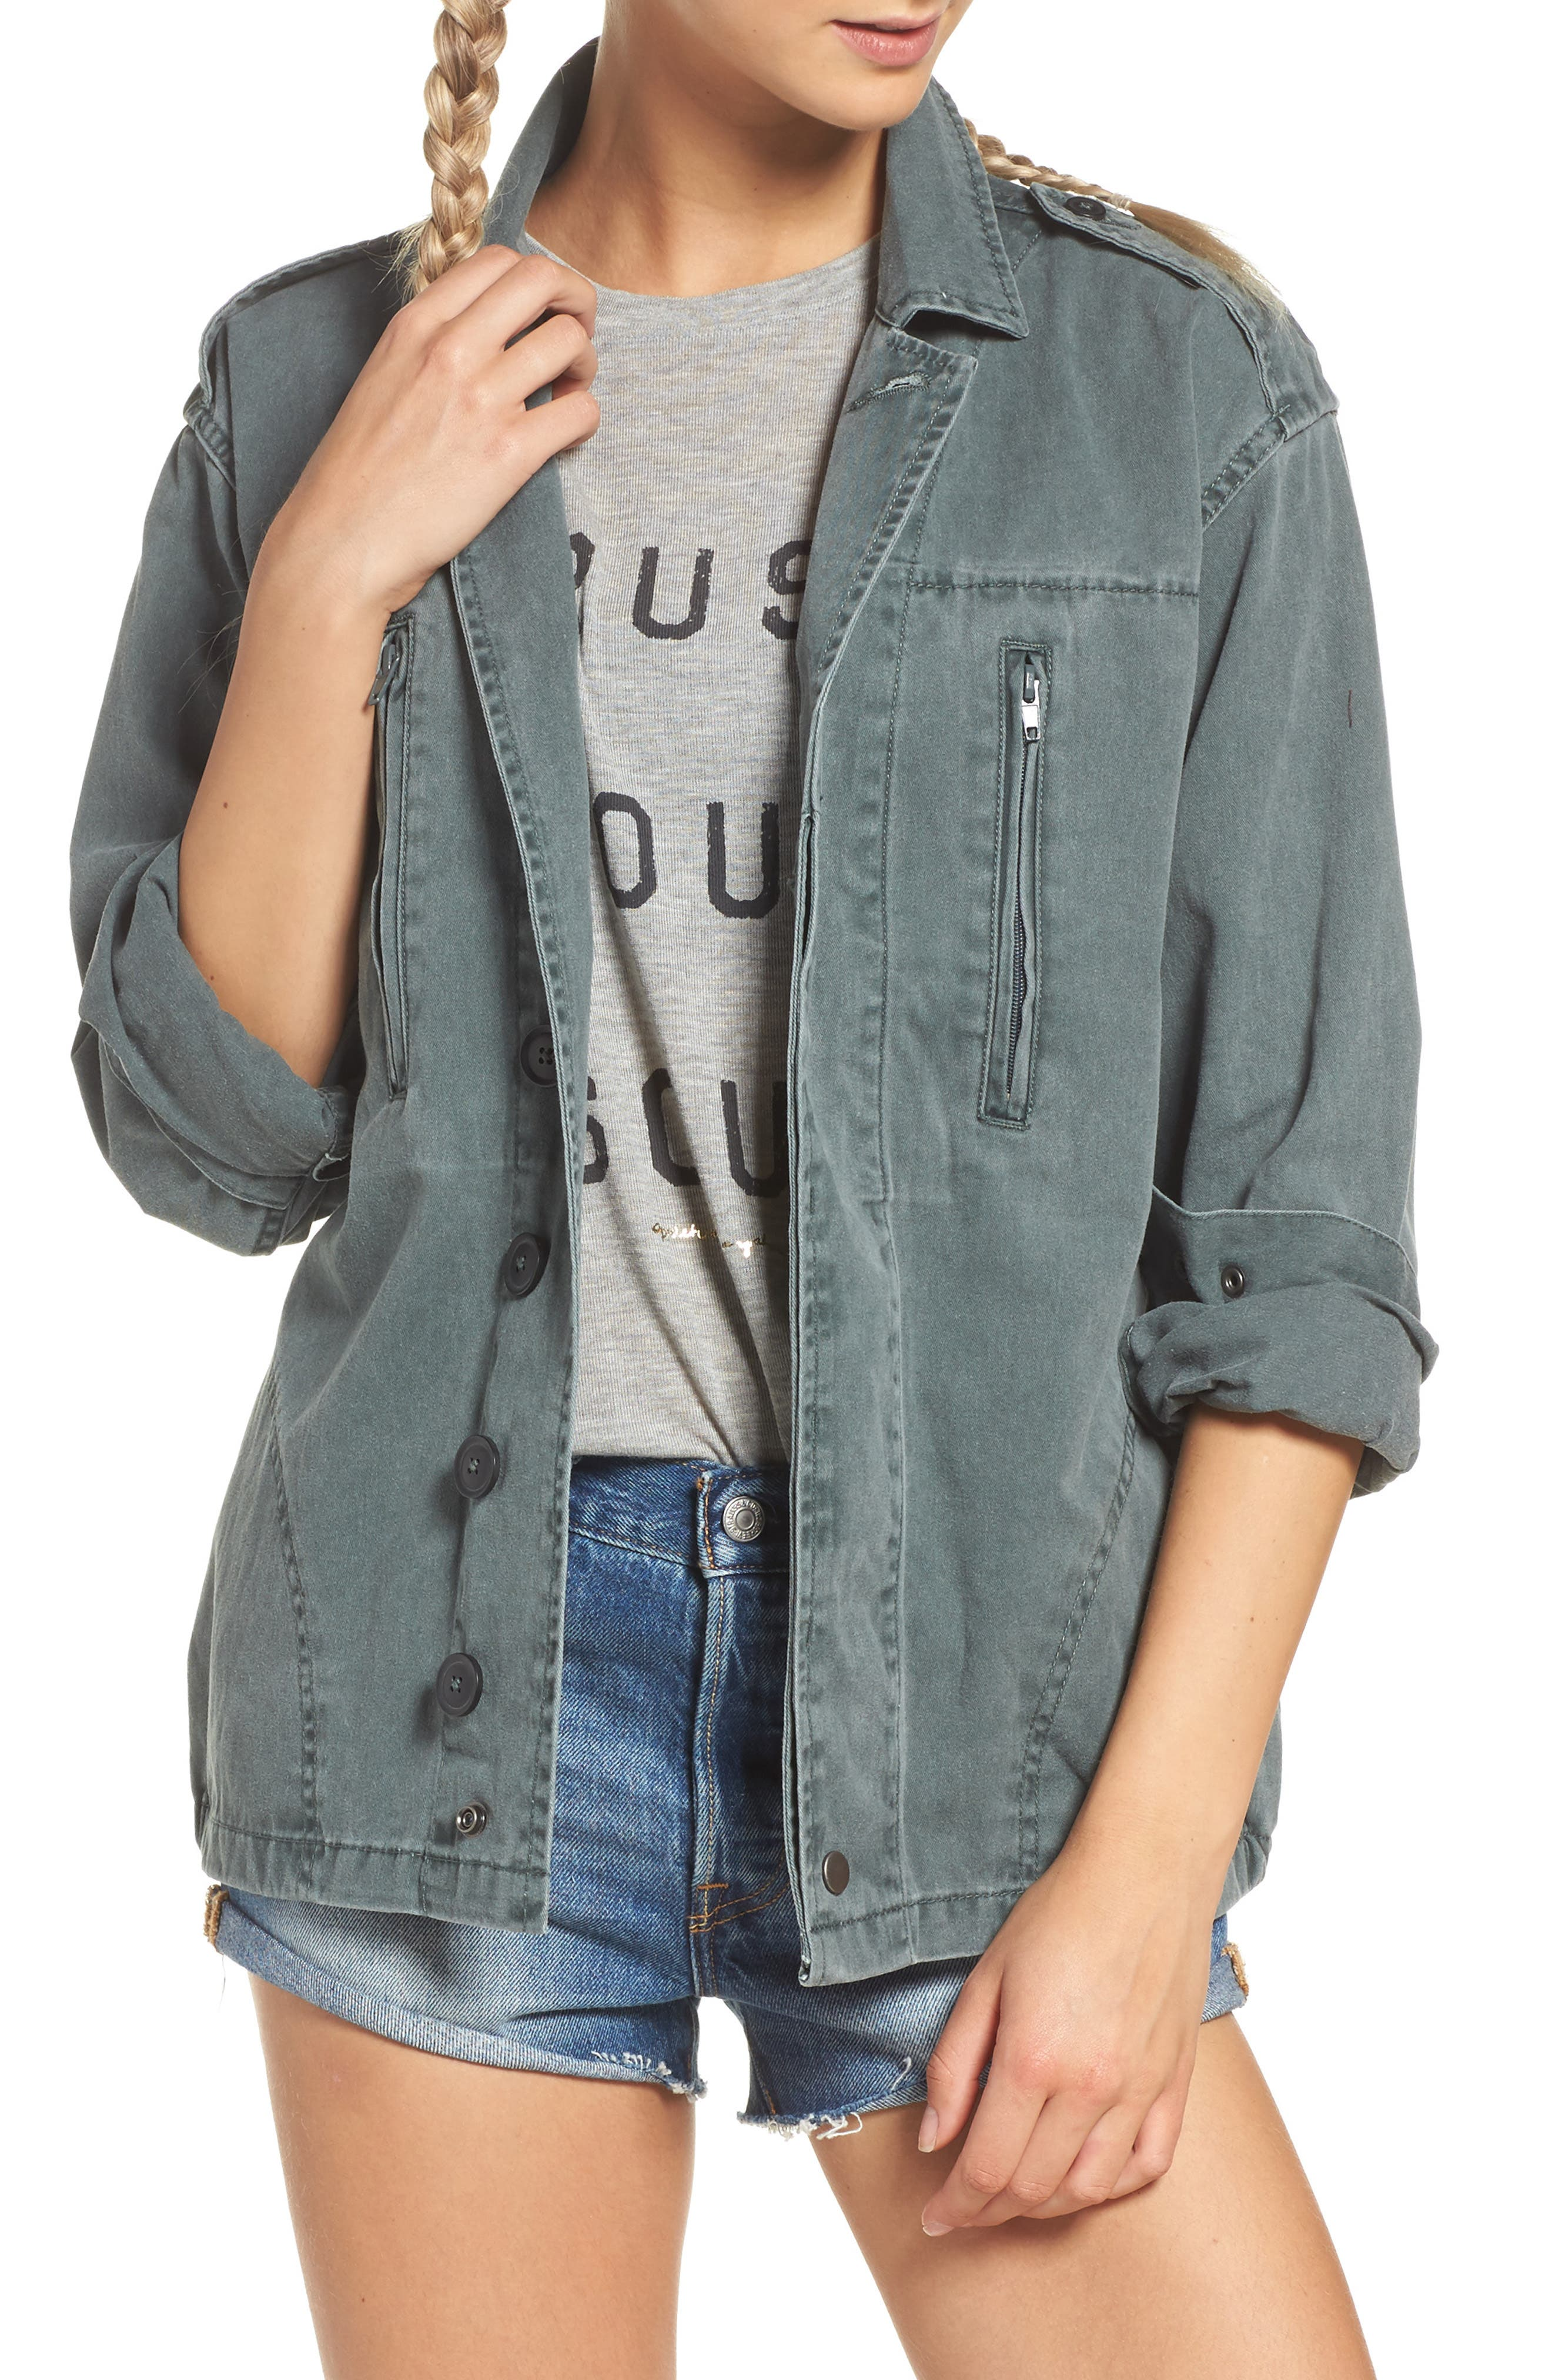 Stay Wild Gypsy Child Amy Jacket,                         Main,                         color, Army